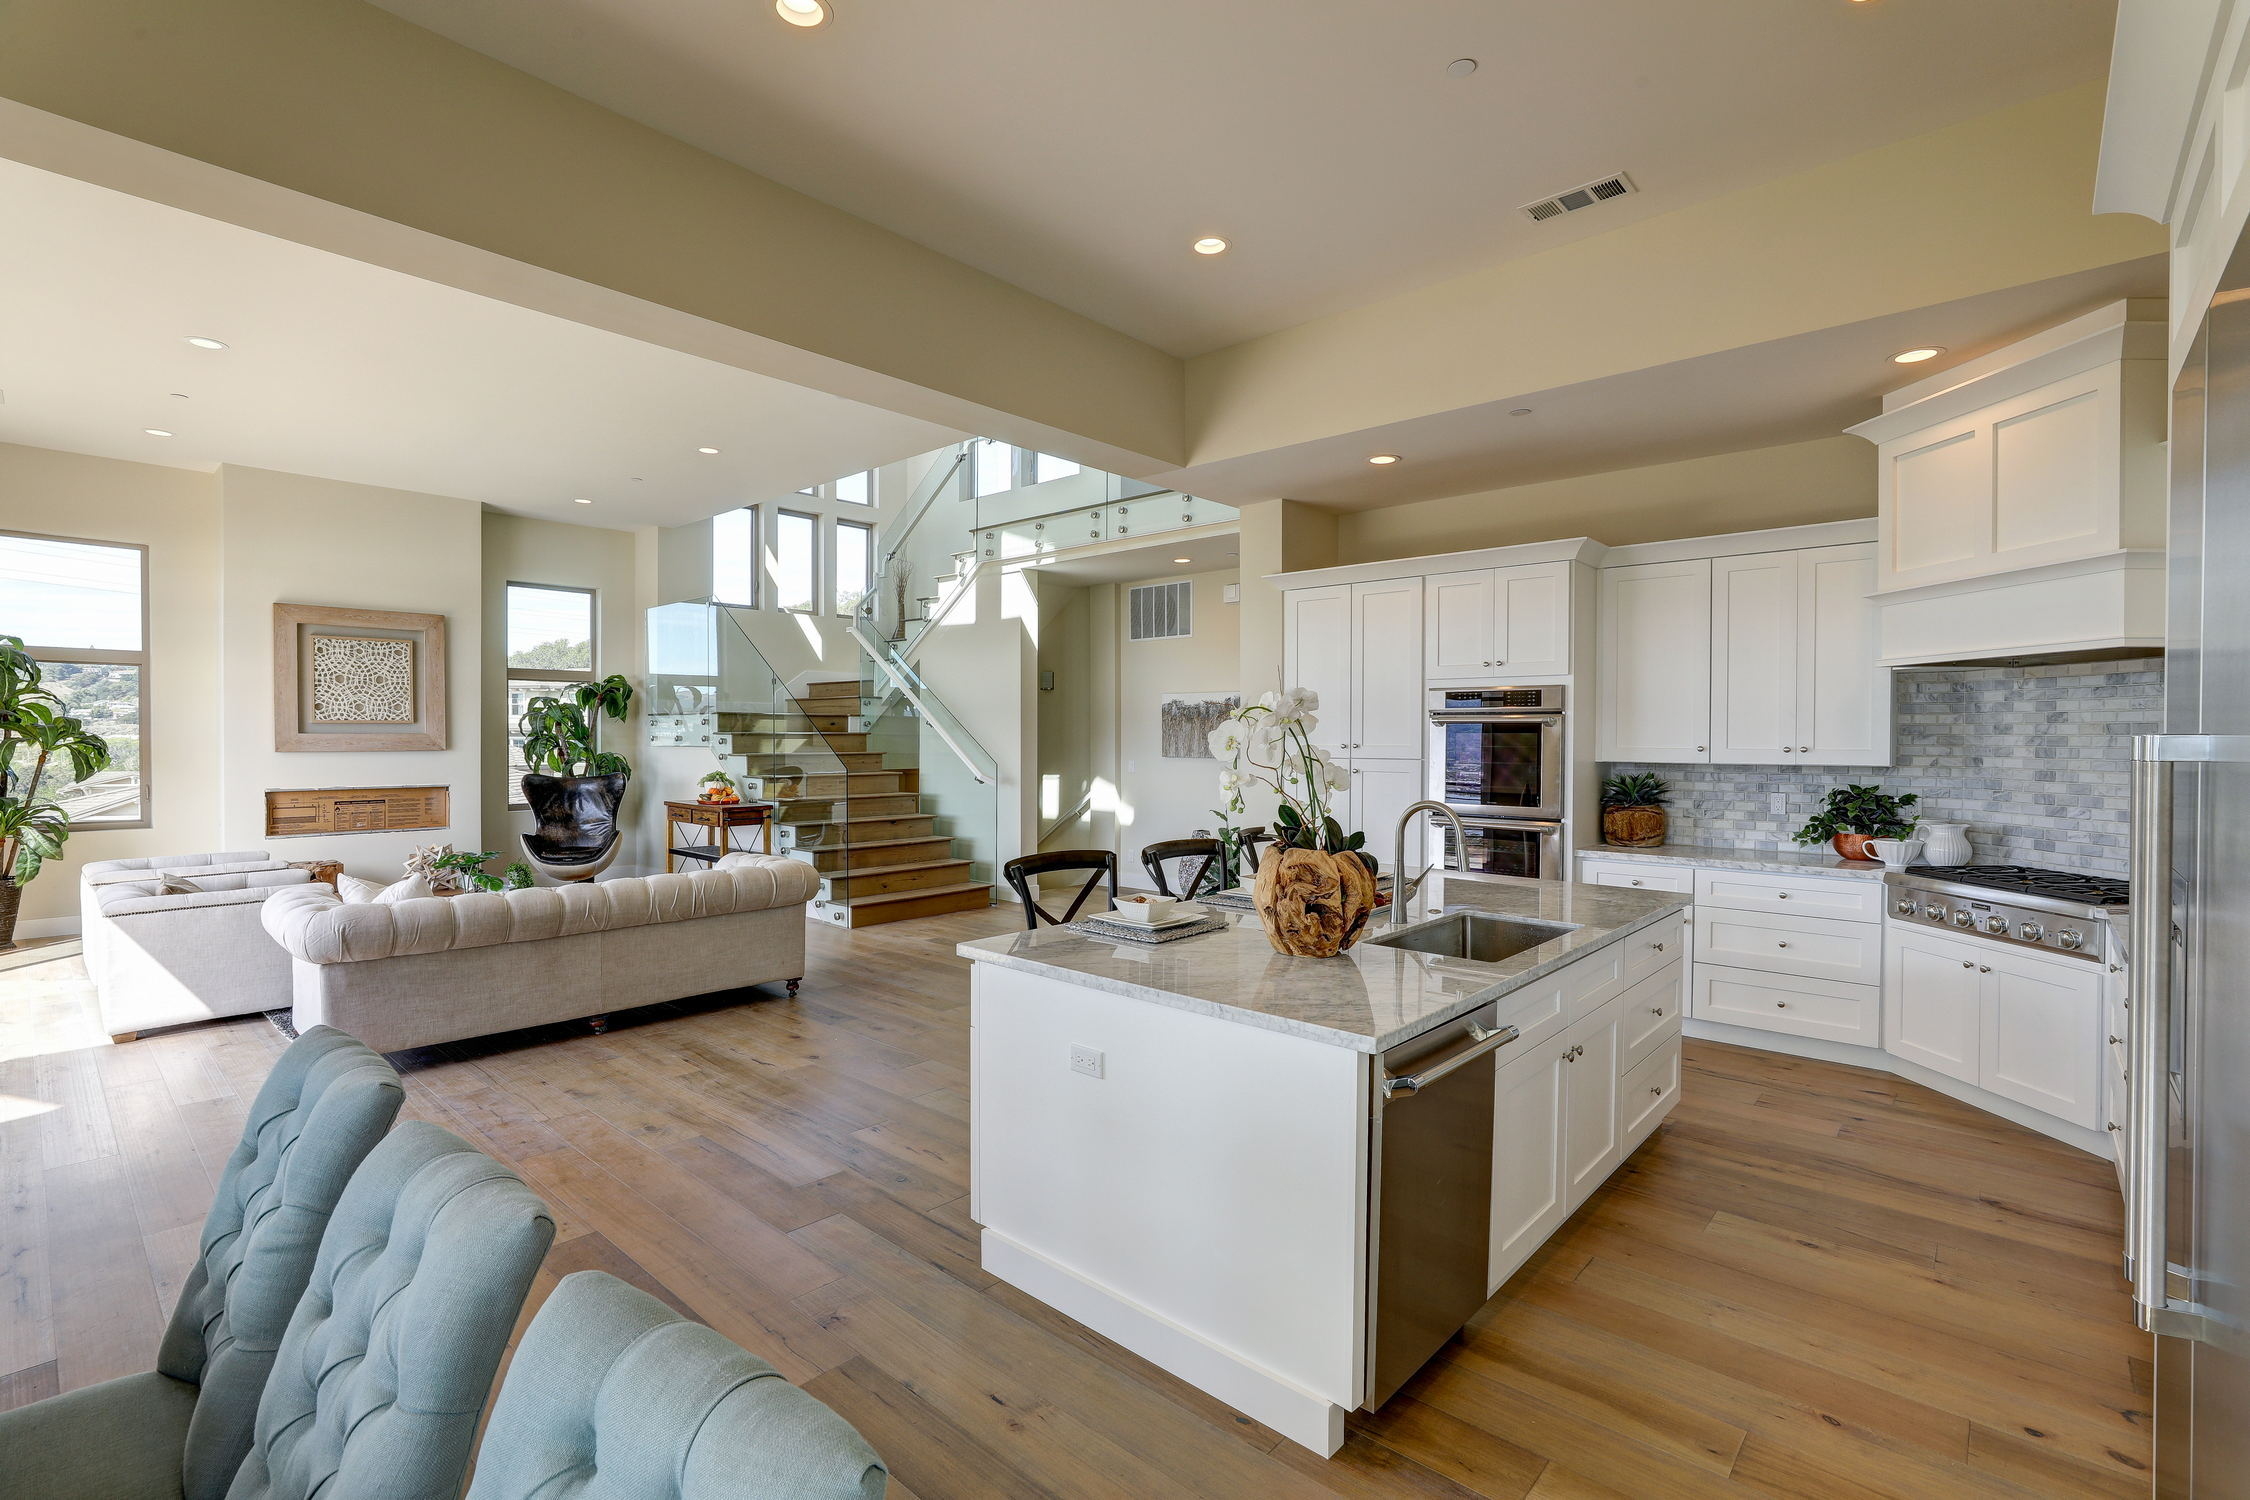 31 Drakes Cove, Larkspur Homes for Sale29 MLS - Own Marin with Compass - Mill Valley Realtor.jpg